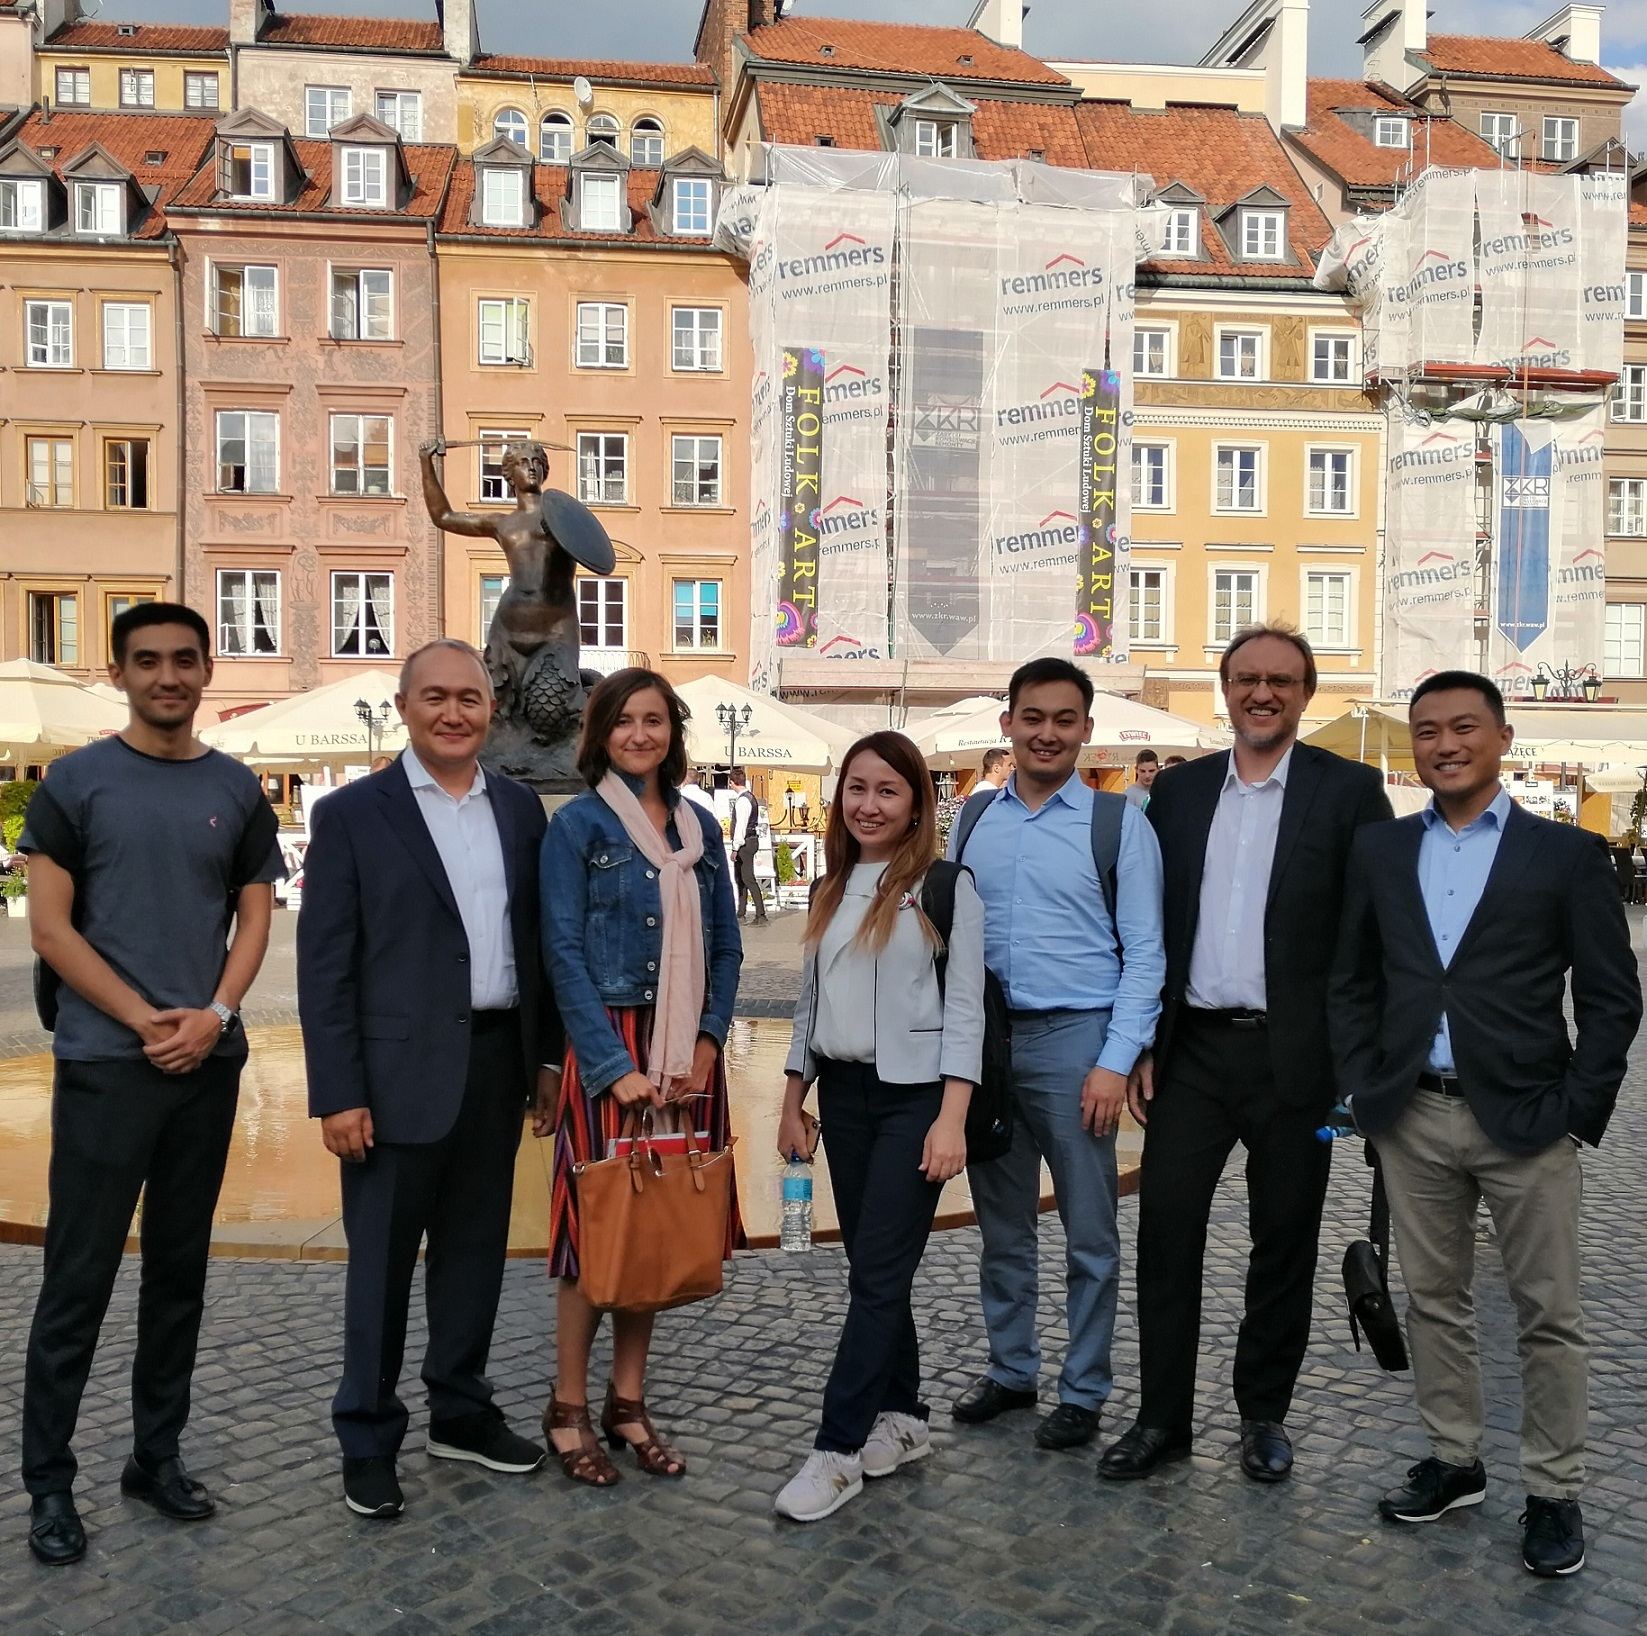 Step in Warsaw - City guide to Warsaw. My very nice business tourists (Toyota Financial Services) from Kazakhstan, from Almaty, also the biggest city in the country with more or less the same population as in Warsaw and also the only city with a metro system. You can always find something in common with others:). In the Old Town Market Square with the mermaid statue in the background. Warsaw, 04.09.2019.